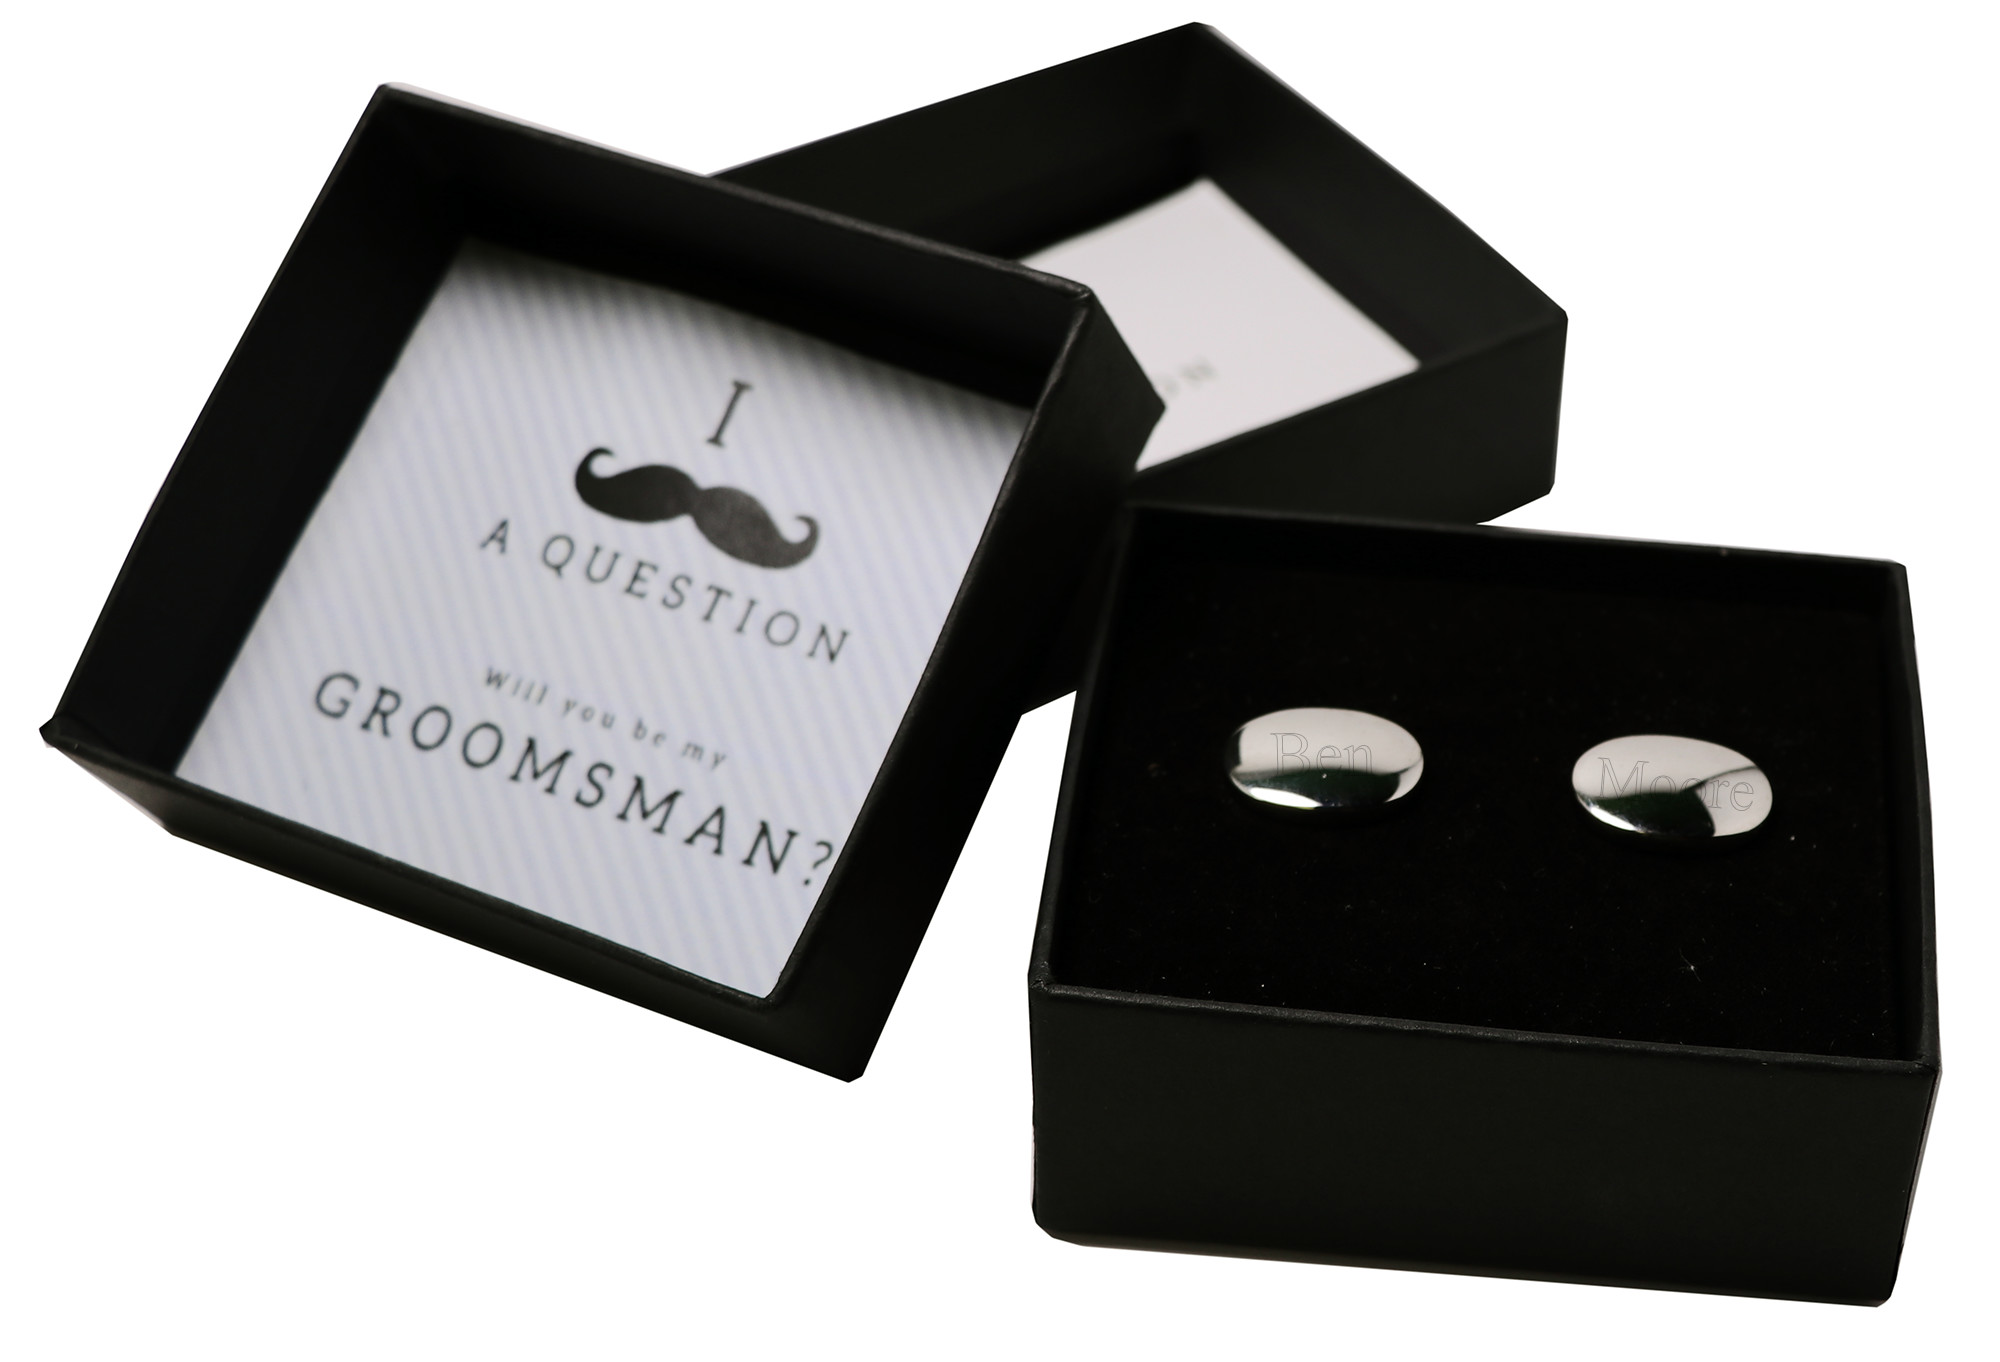 Will You Be my Groomsman/Best man Engraved Silver Cuff Links Gift Box